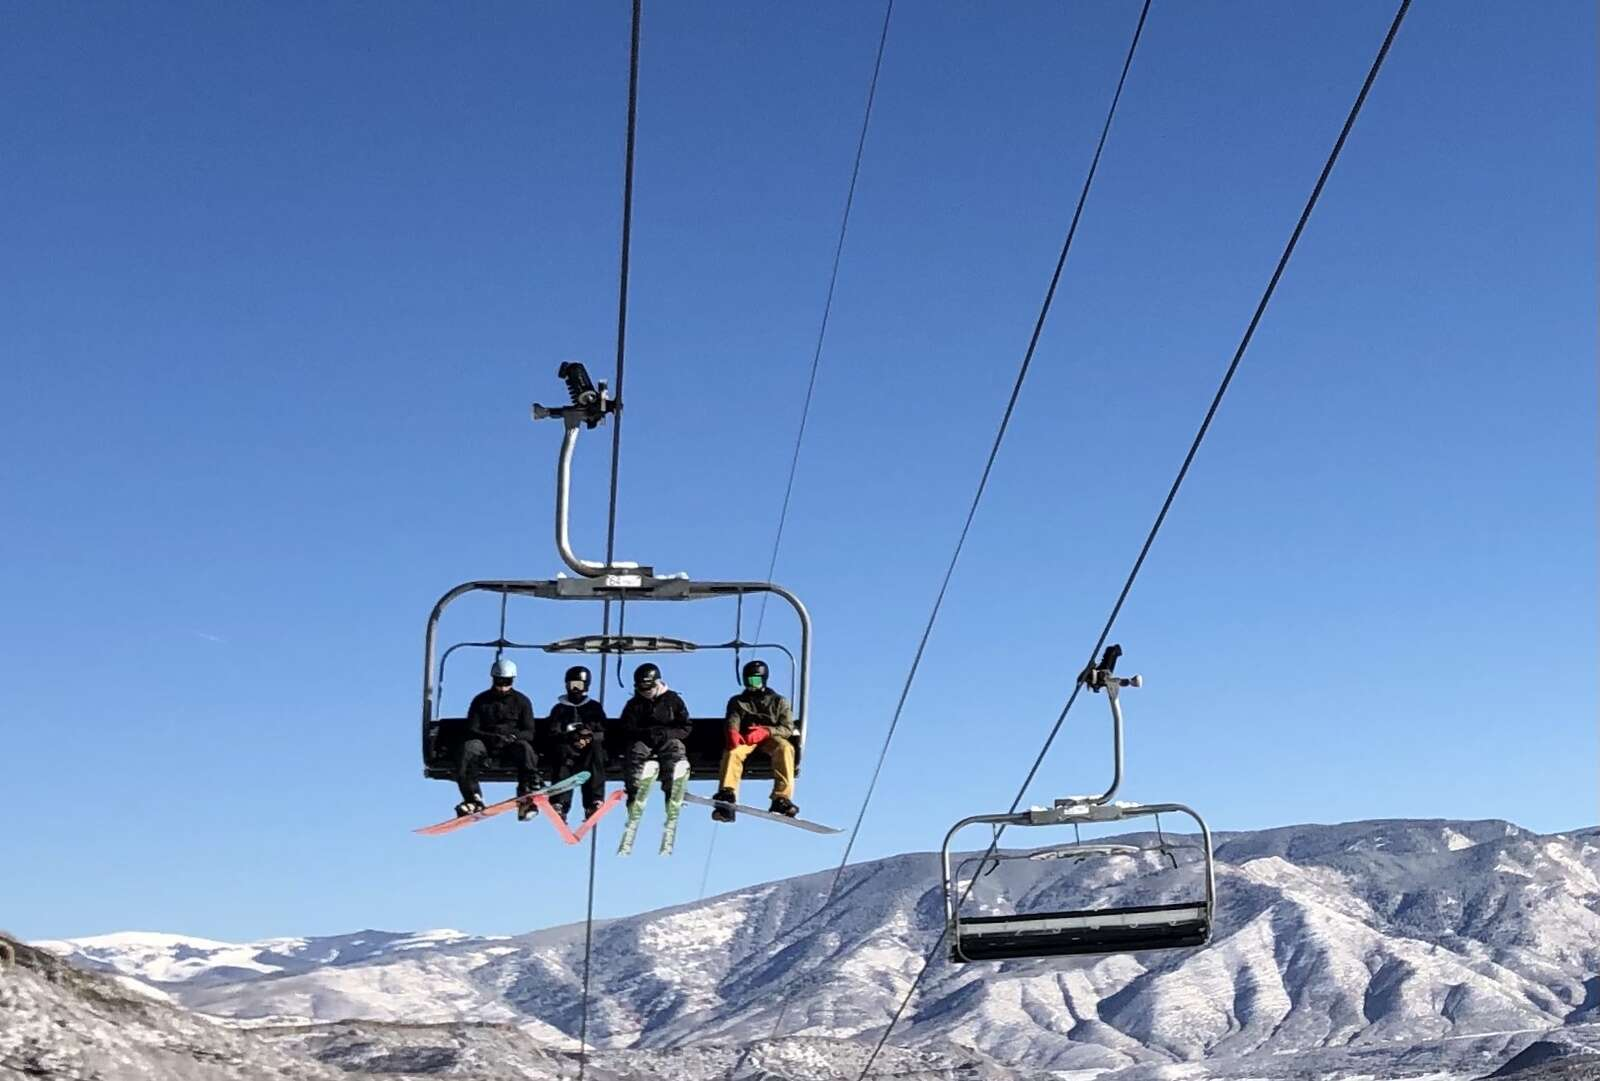 Four skiers ride the Village Express chairlift during a mellow opening day at Snowmass on Nov. 25, 2020.